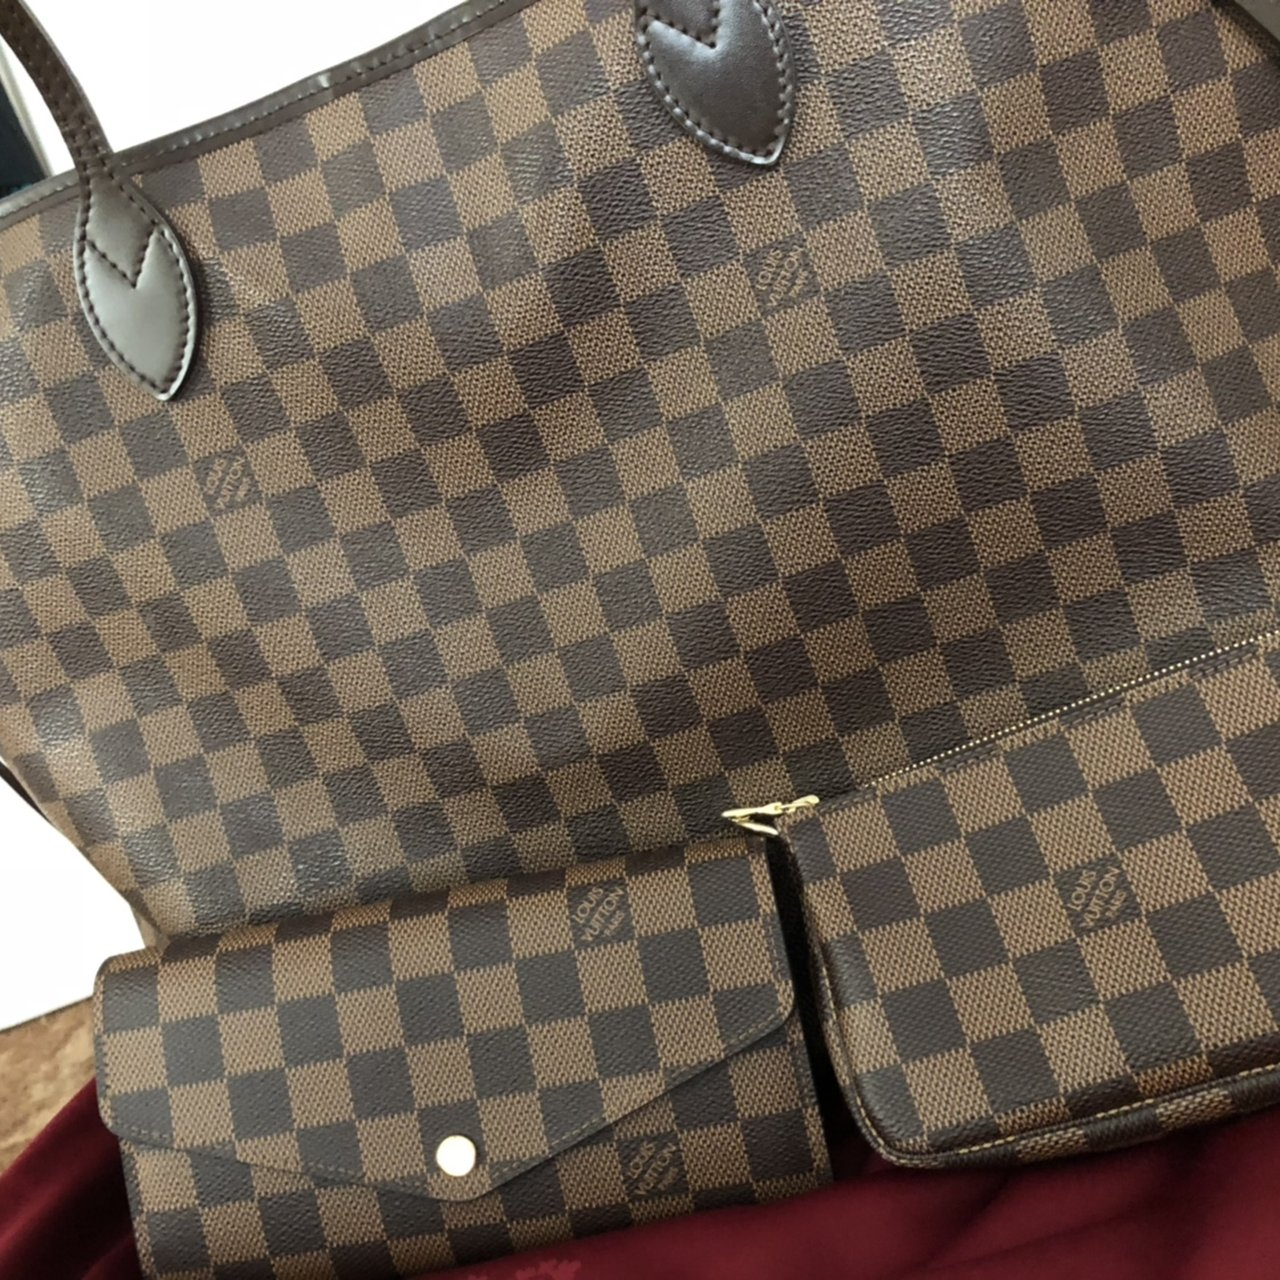 NOT SELLING! Looking for a Louis Vuitton Damier Ebene MM a - Depop 53b9bfe861a69